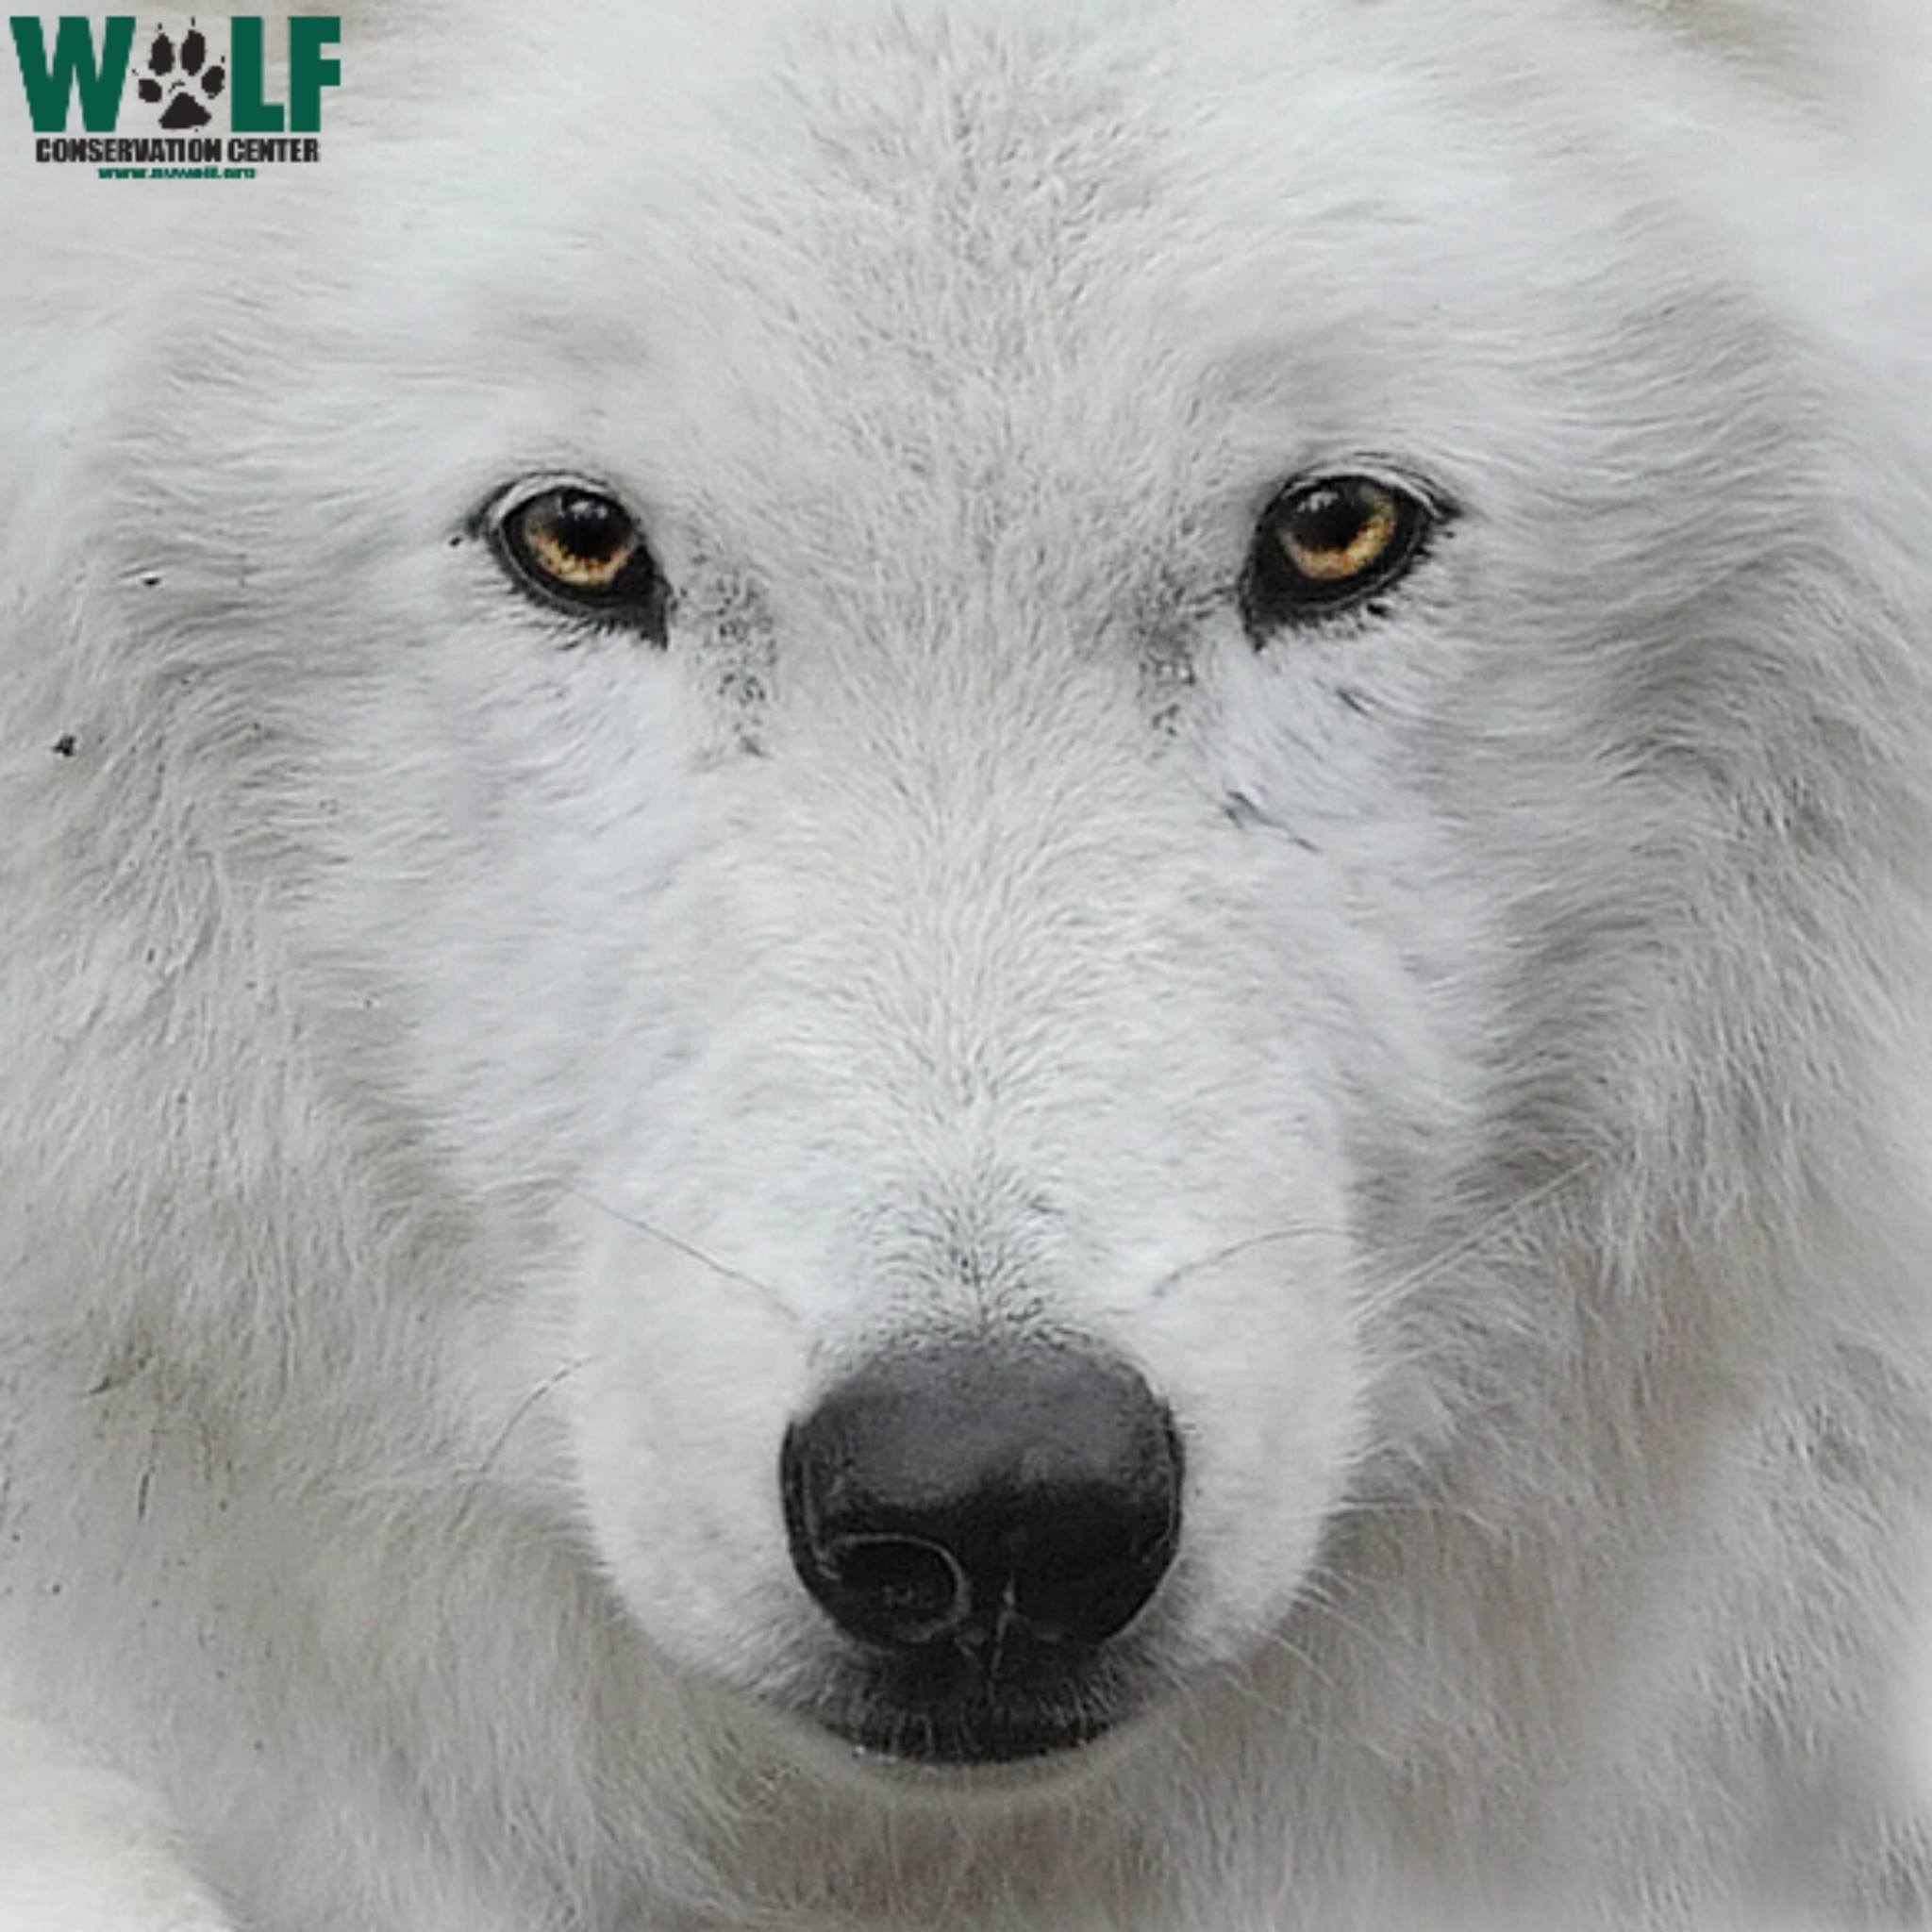 SOUTH SALEM - Pack Chat for Kids @ Wolf Conservation Center